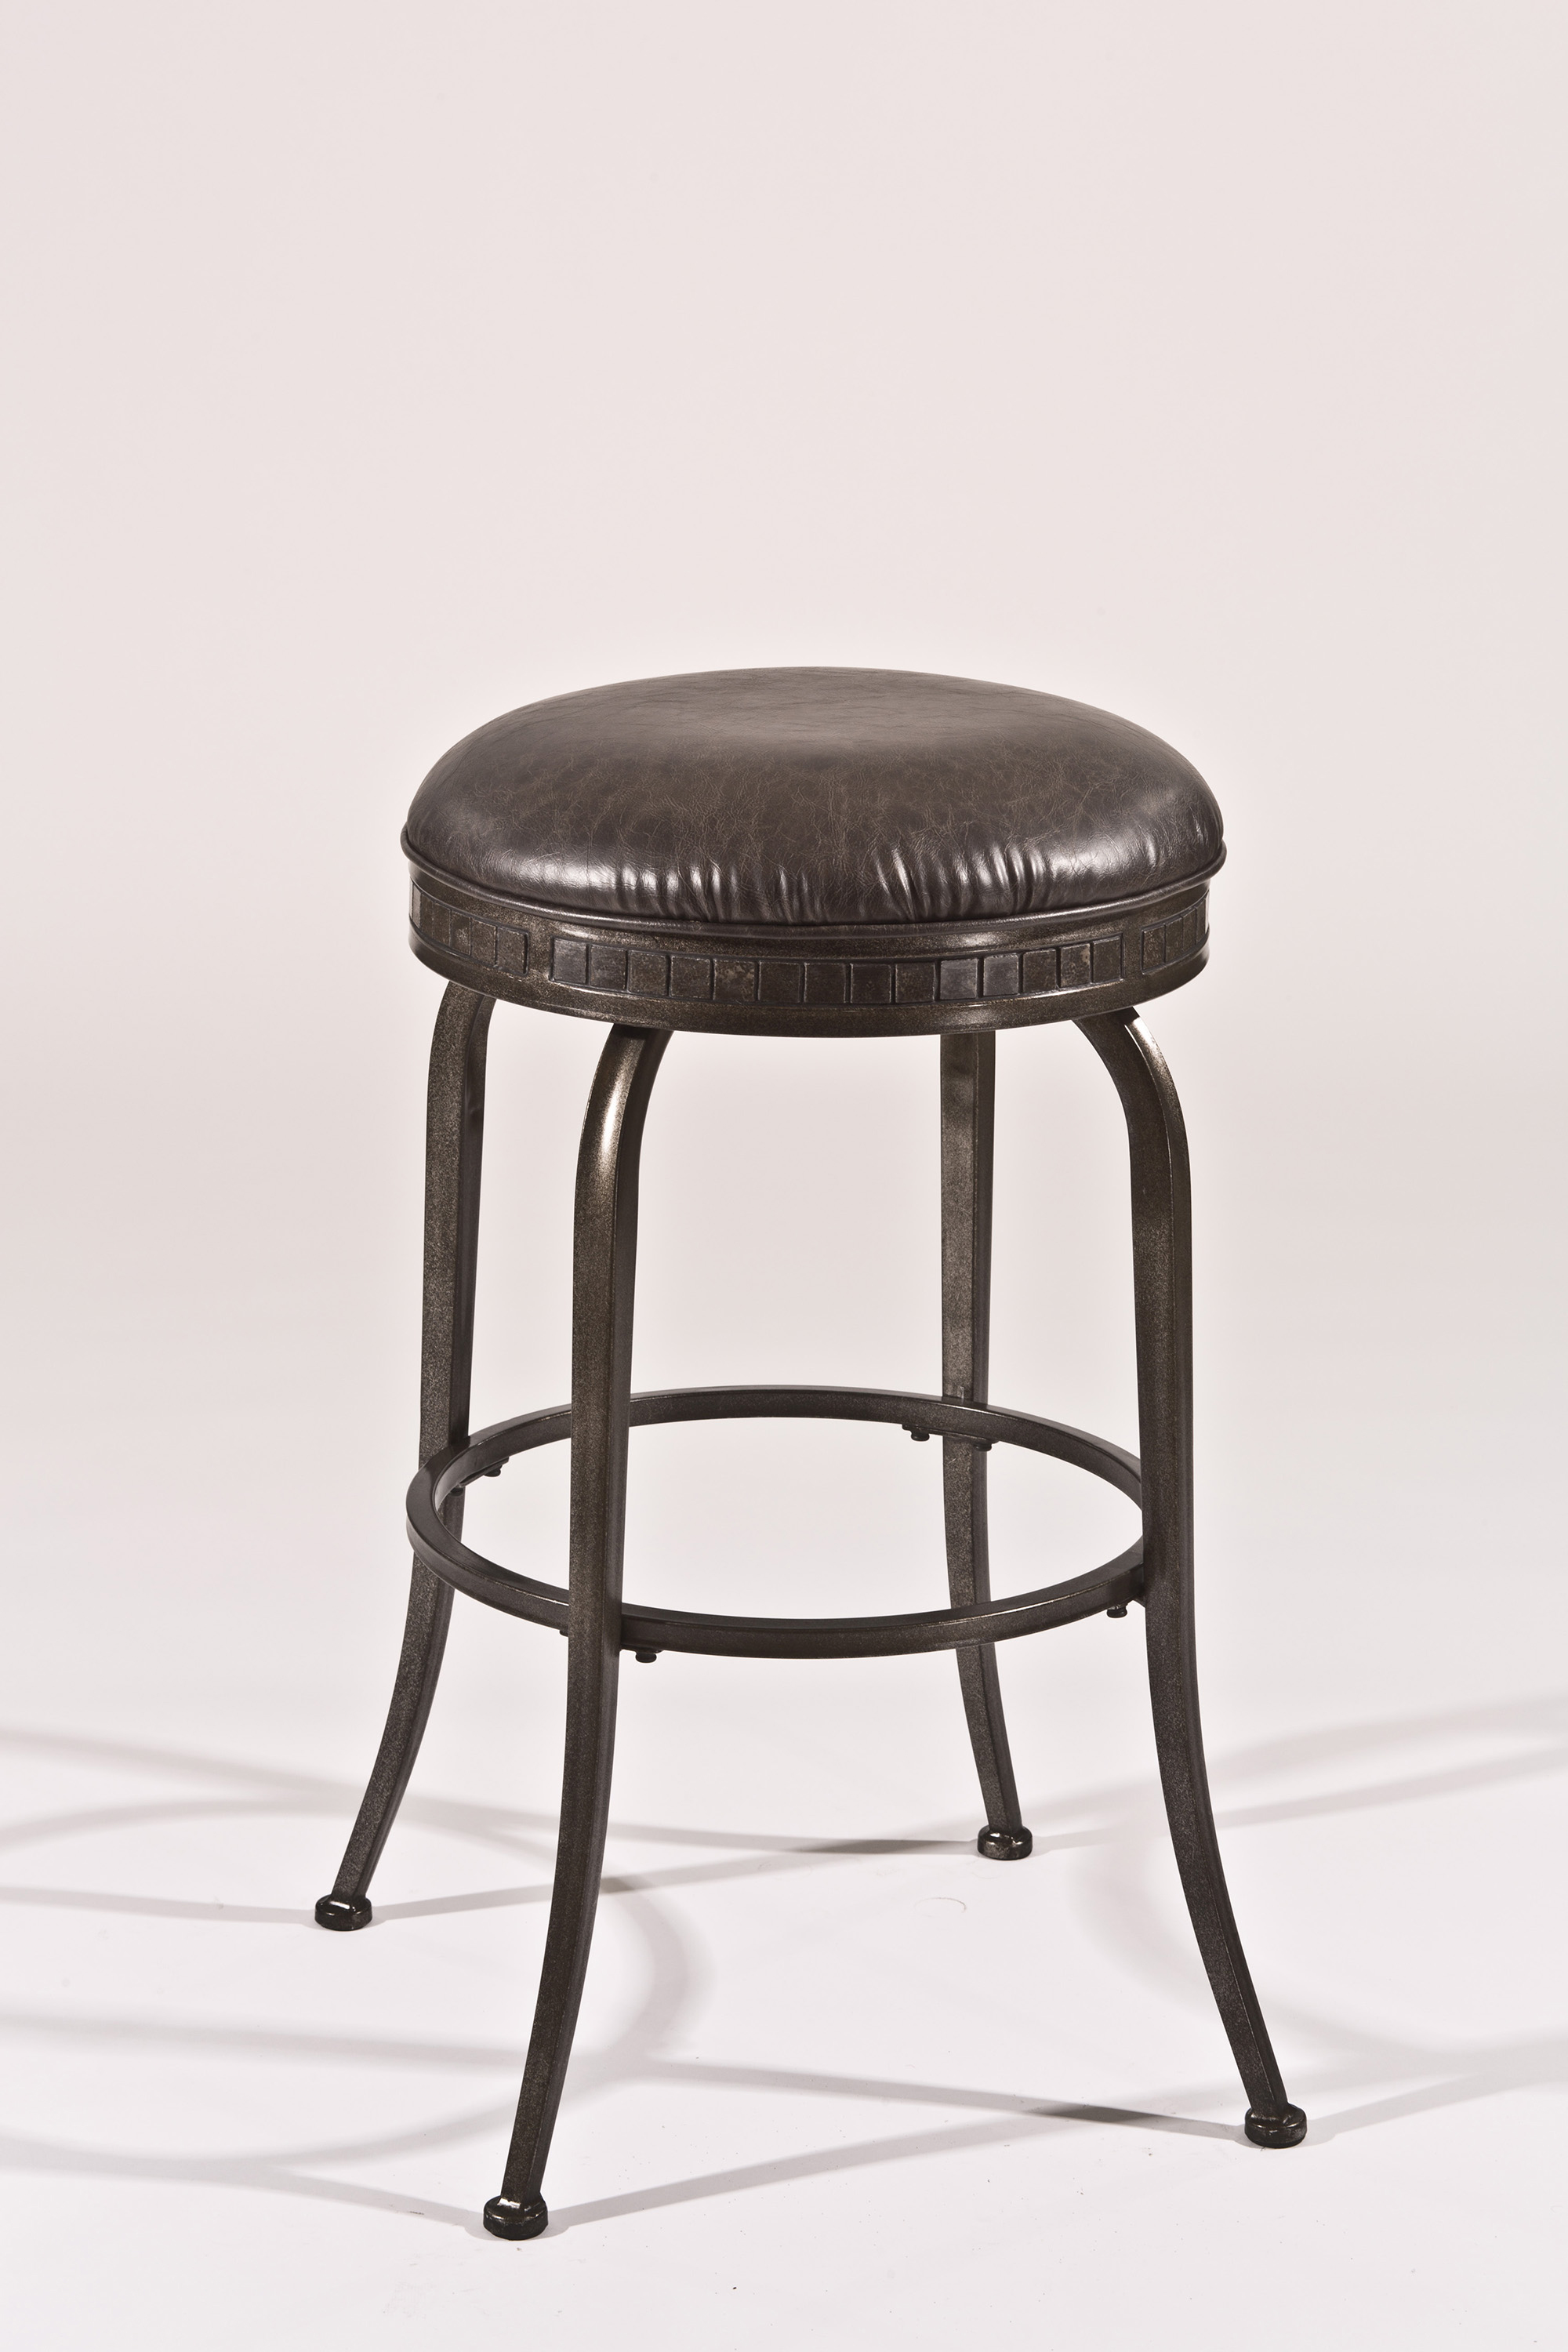 Hillsdale backless bar stools 5691 830 black backless for Backless bar stools